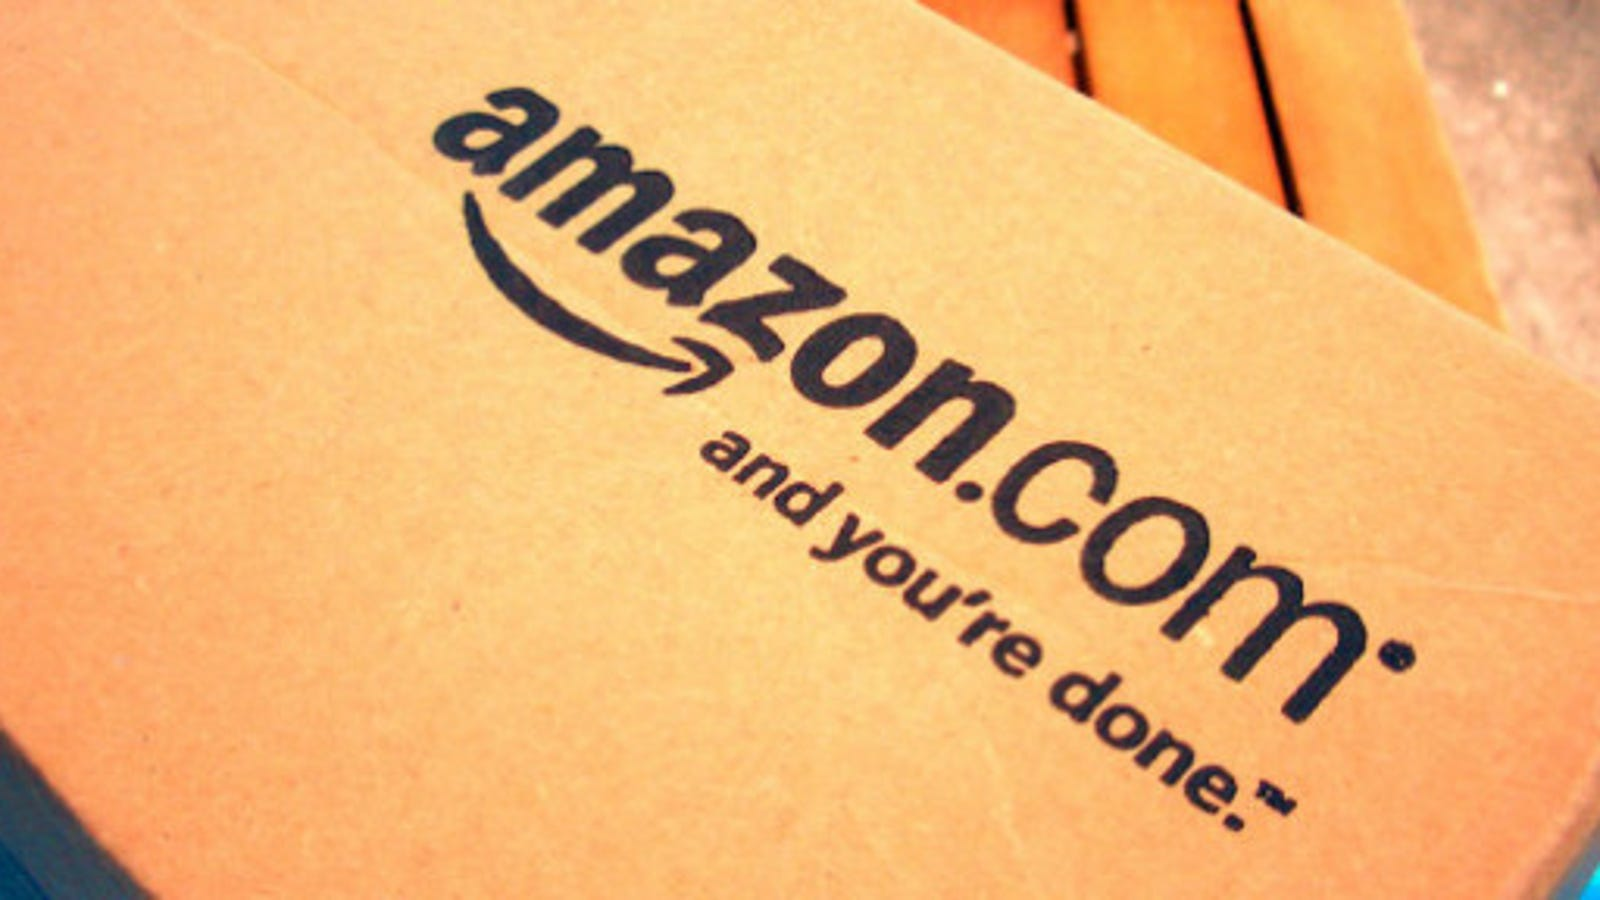 Free Shipping Sites >> Amazon Prime S Free Shipping Is Coming To Other Sites